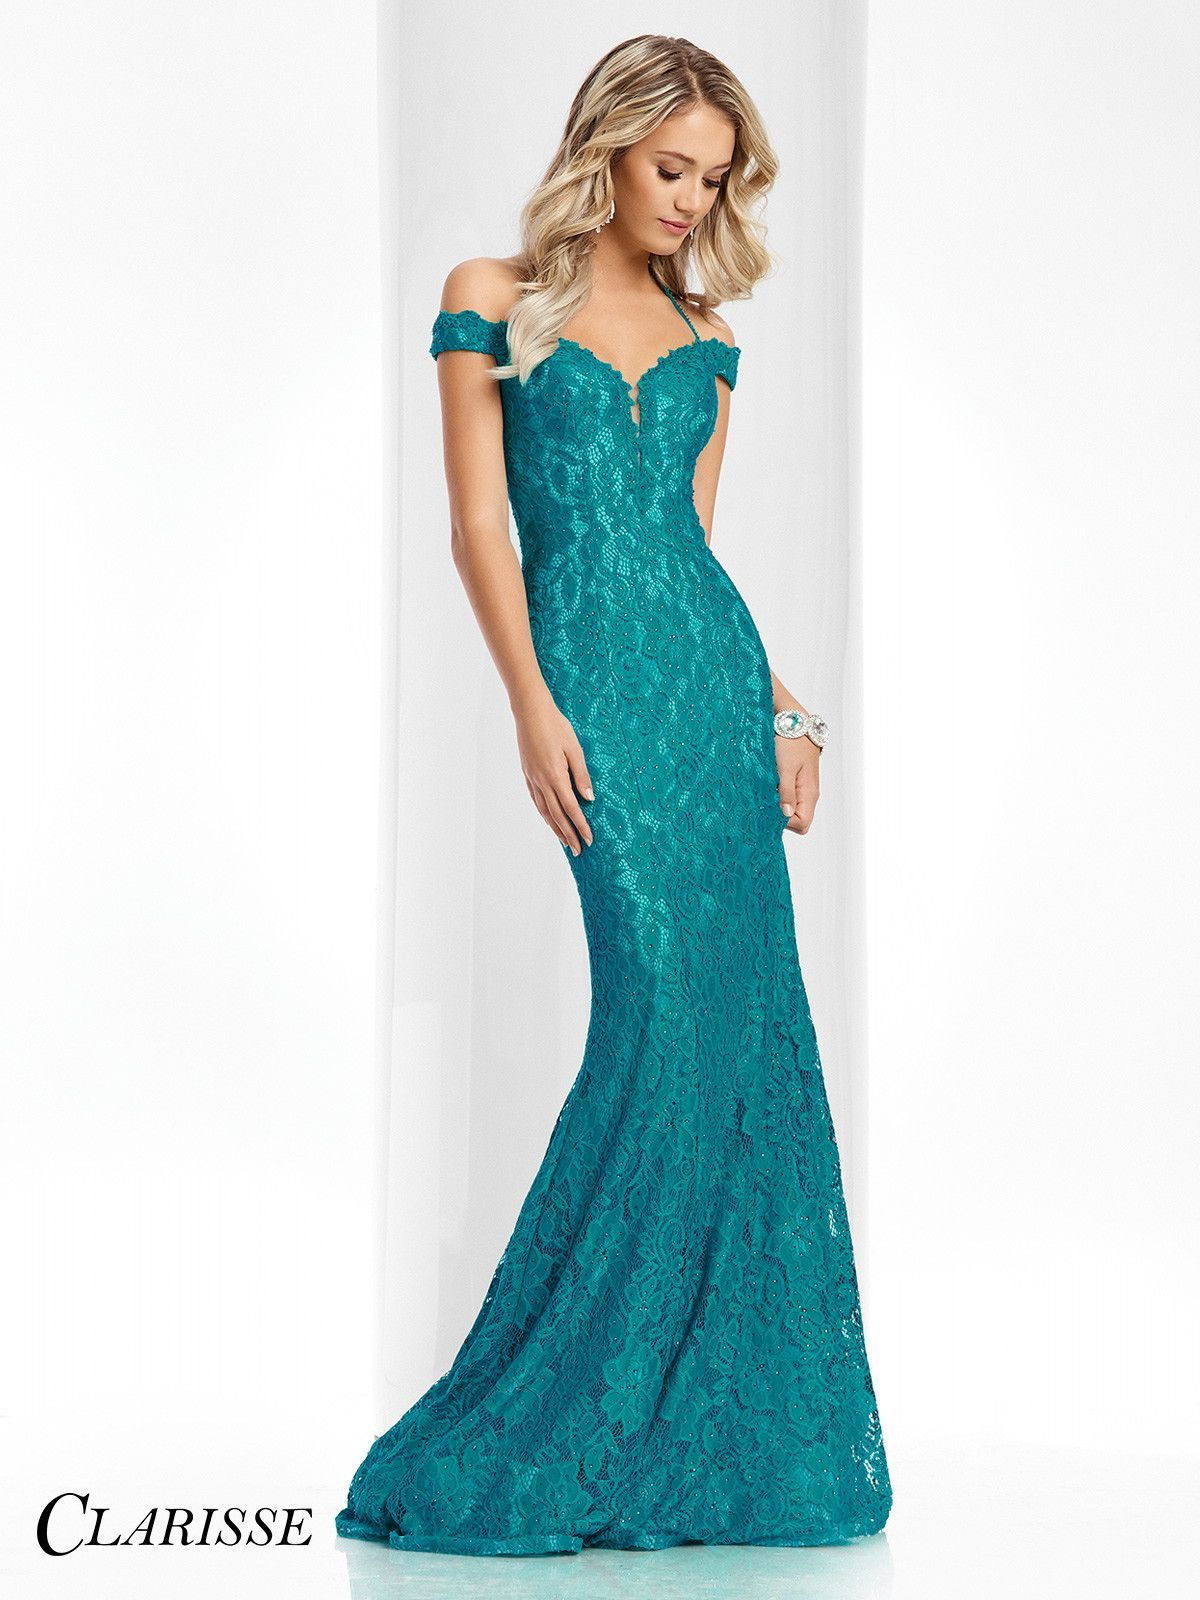 Clarisse Couture 4801 Jade Prom Dress | Dresses.<3 | Pinterest ...